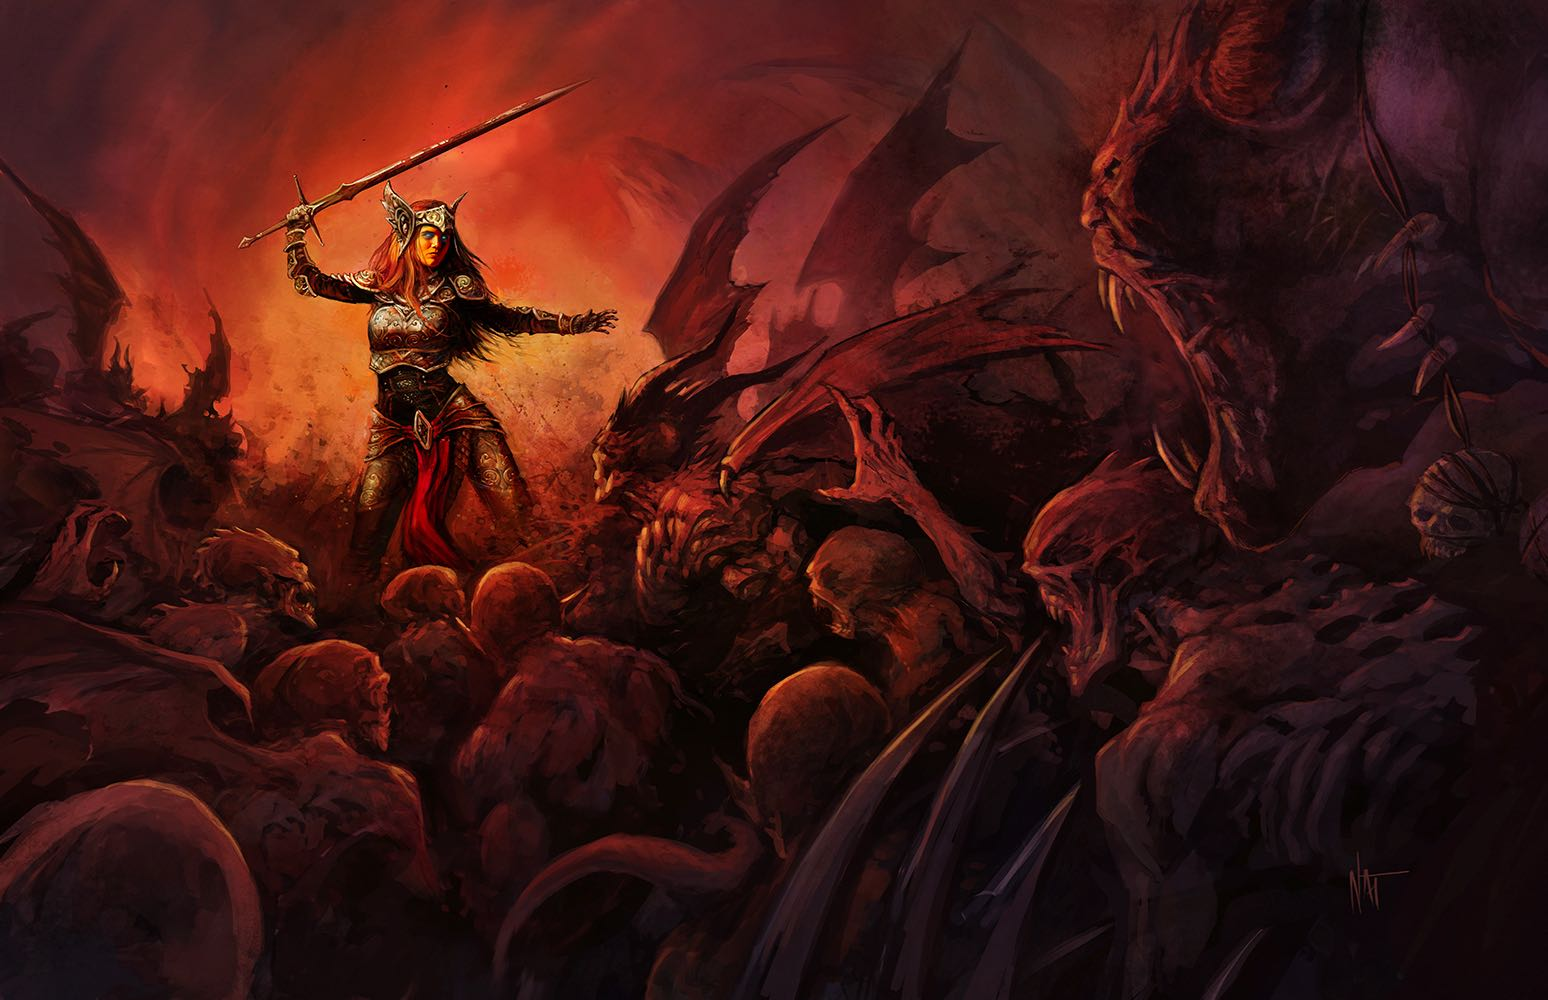 Return to your RPG roots in Baldur's Gate: Siege of Dragonspear, headed to mobile this week